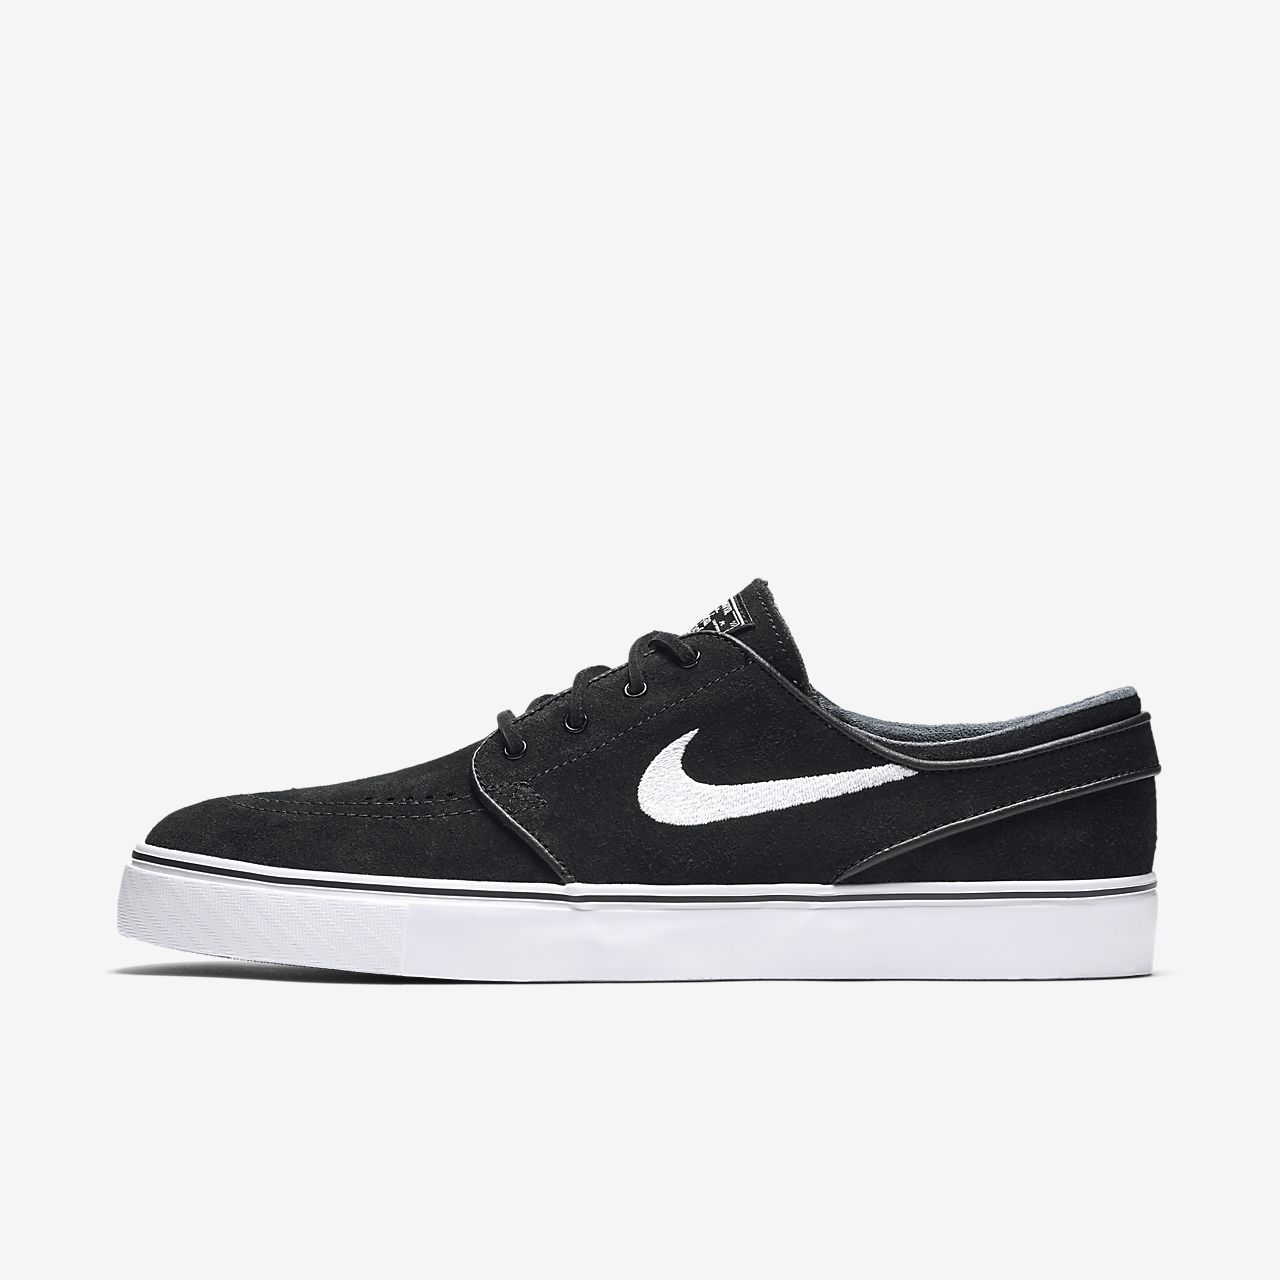 check out c12b9 2faf8 ... Nike SB Zoom Stefan Janoski OG Men s Skate Shoe